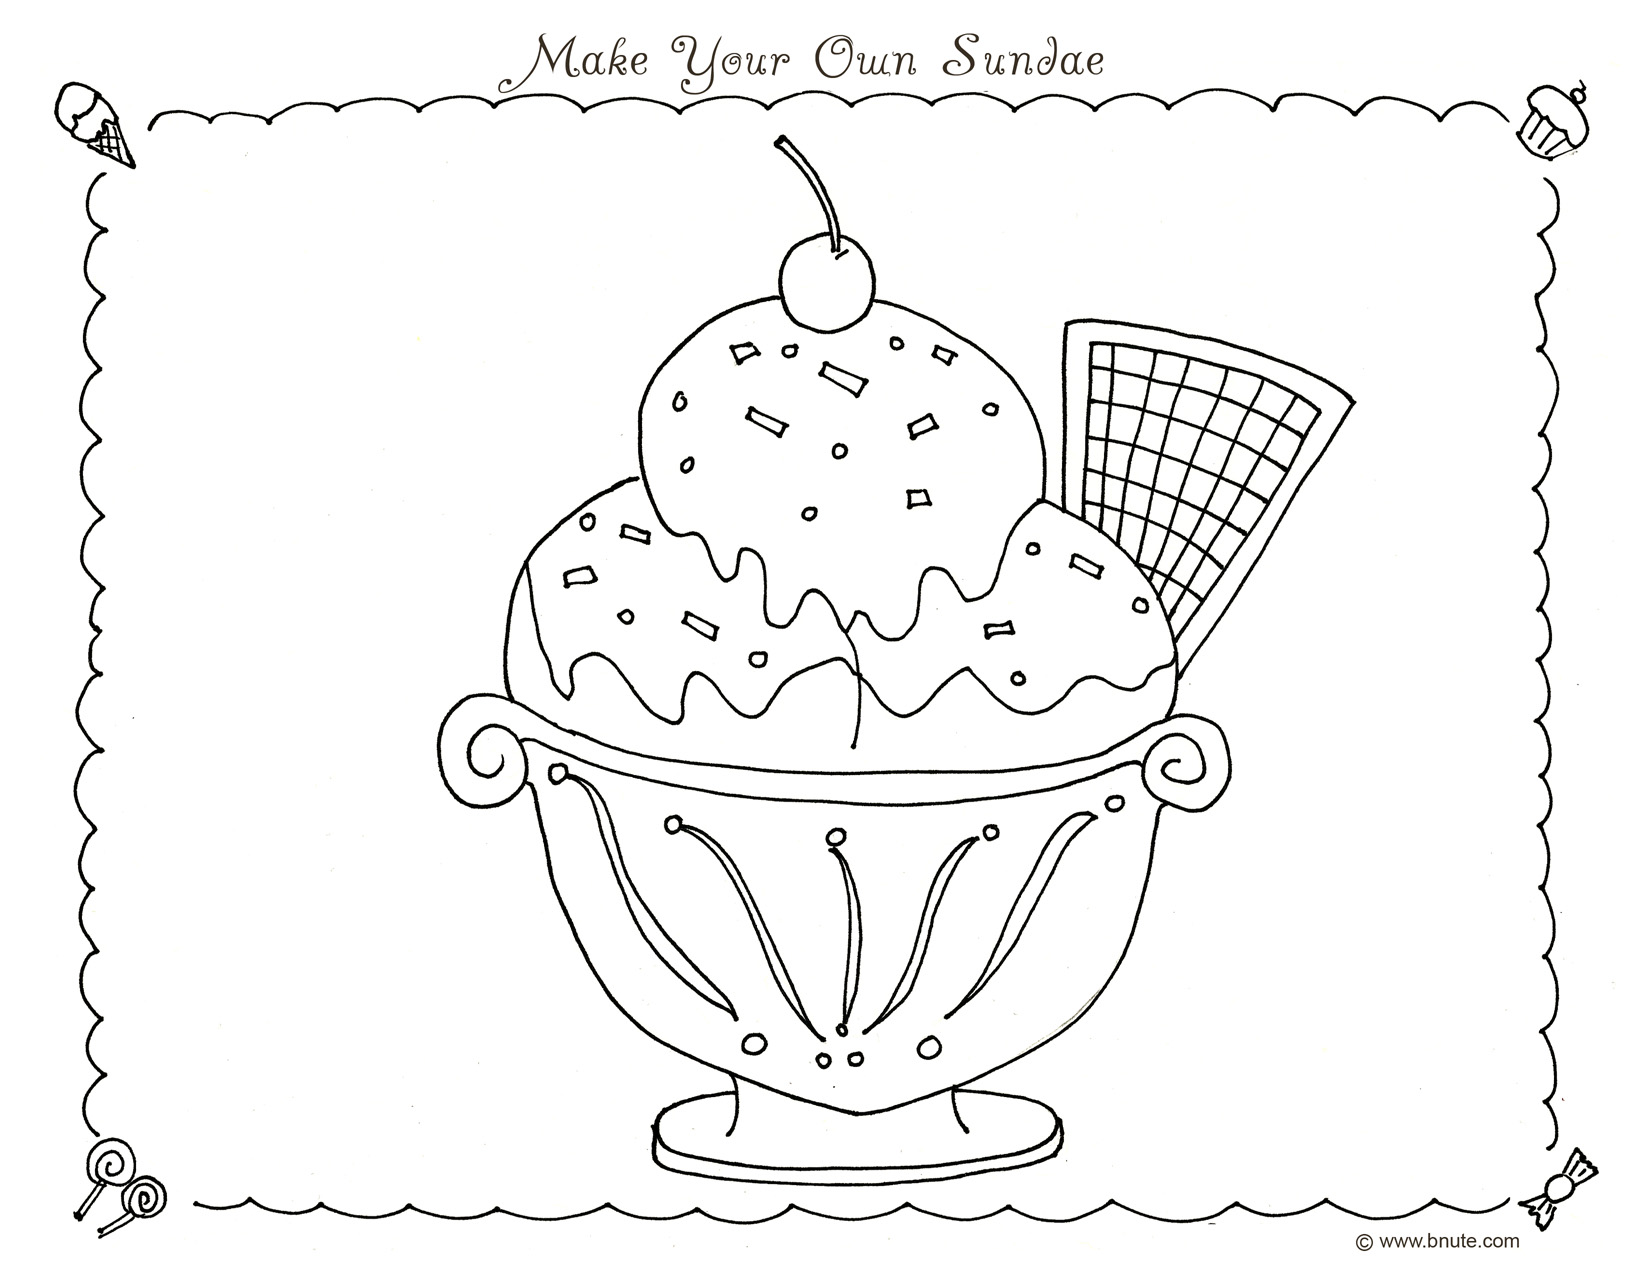 Adult Best Make Your Own Coloring Pages For Free Images beauty bnute productions sweet treats party ideas decorations games make your own sundae coloring page by b nute images